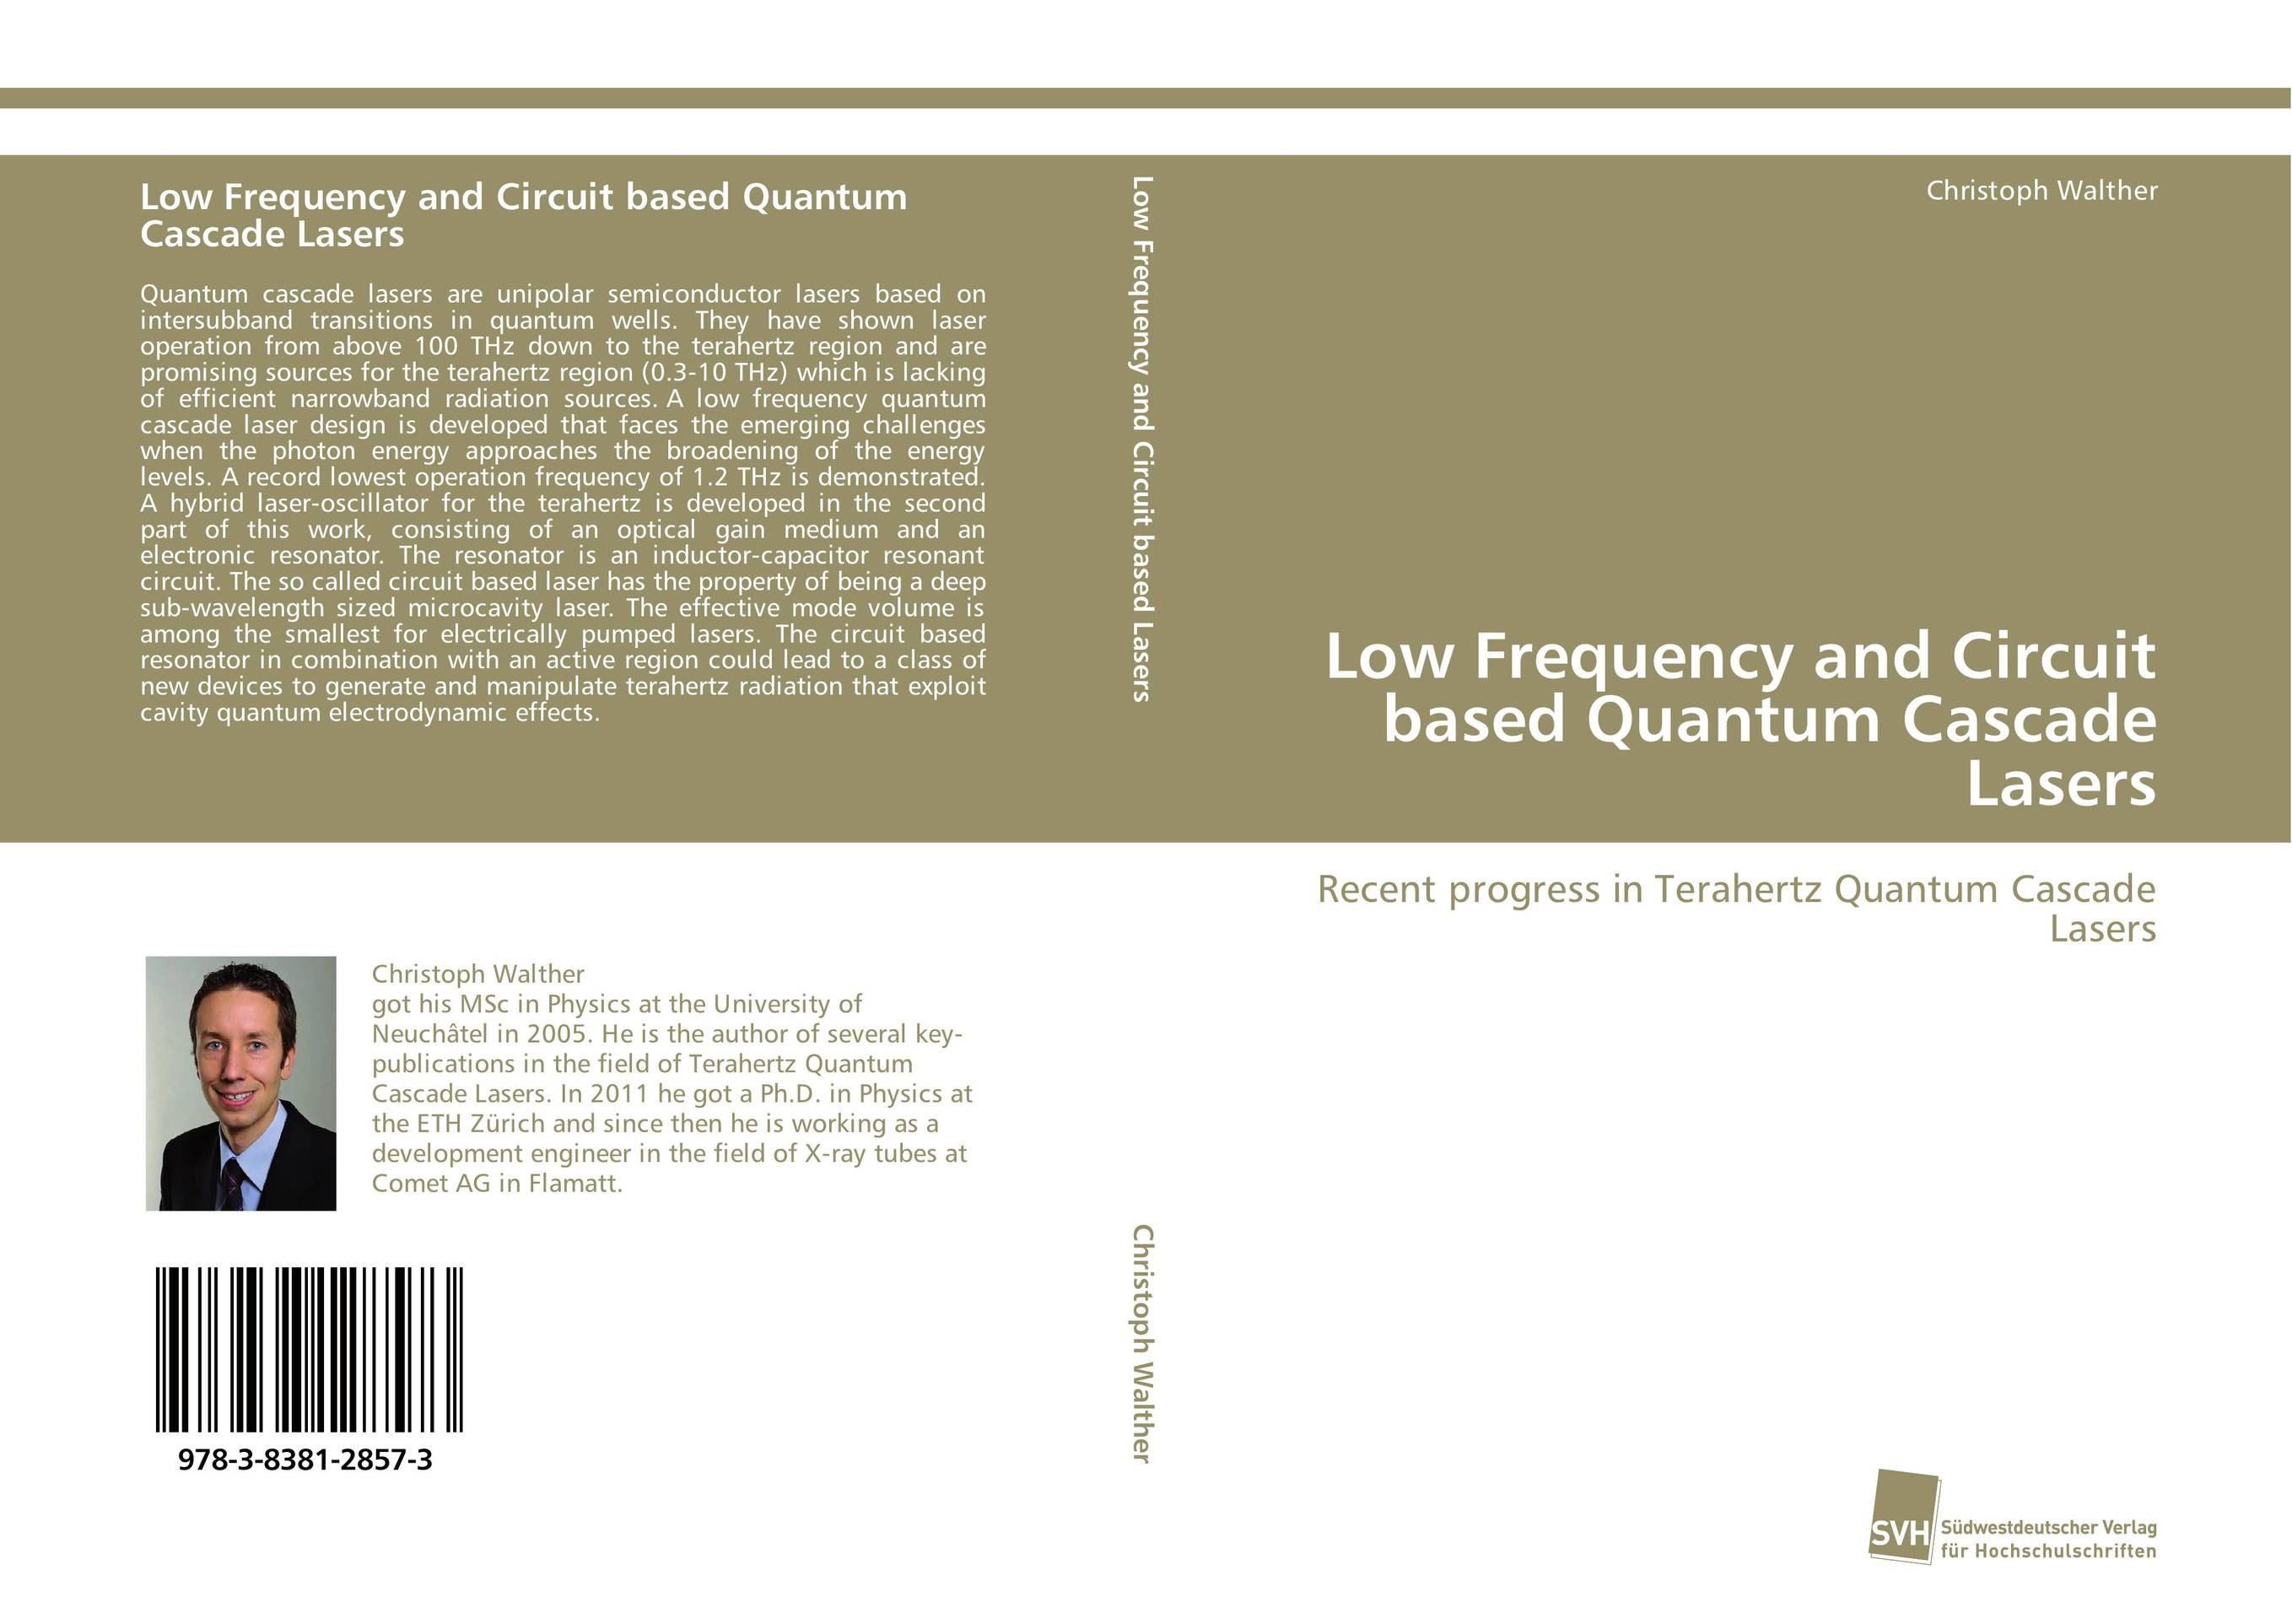 Low Frequency and Circuit based Quantum Cascade Lasers quantum nonlinearities in strong coupling circuit qed